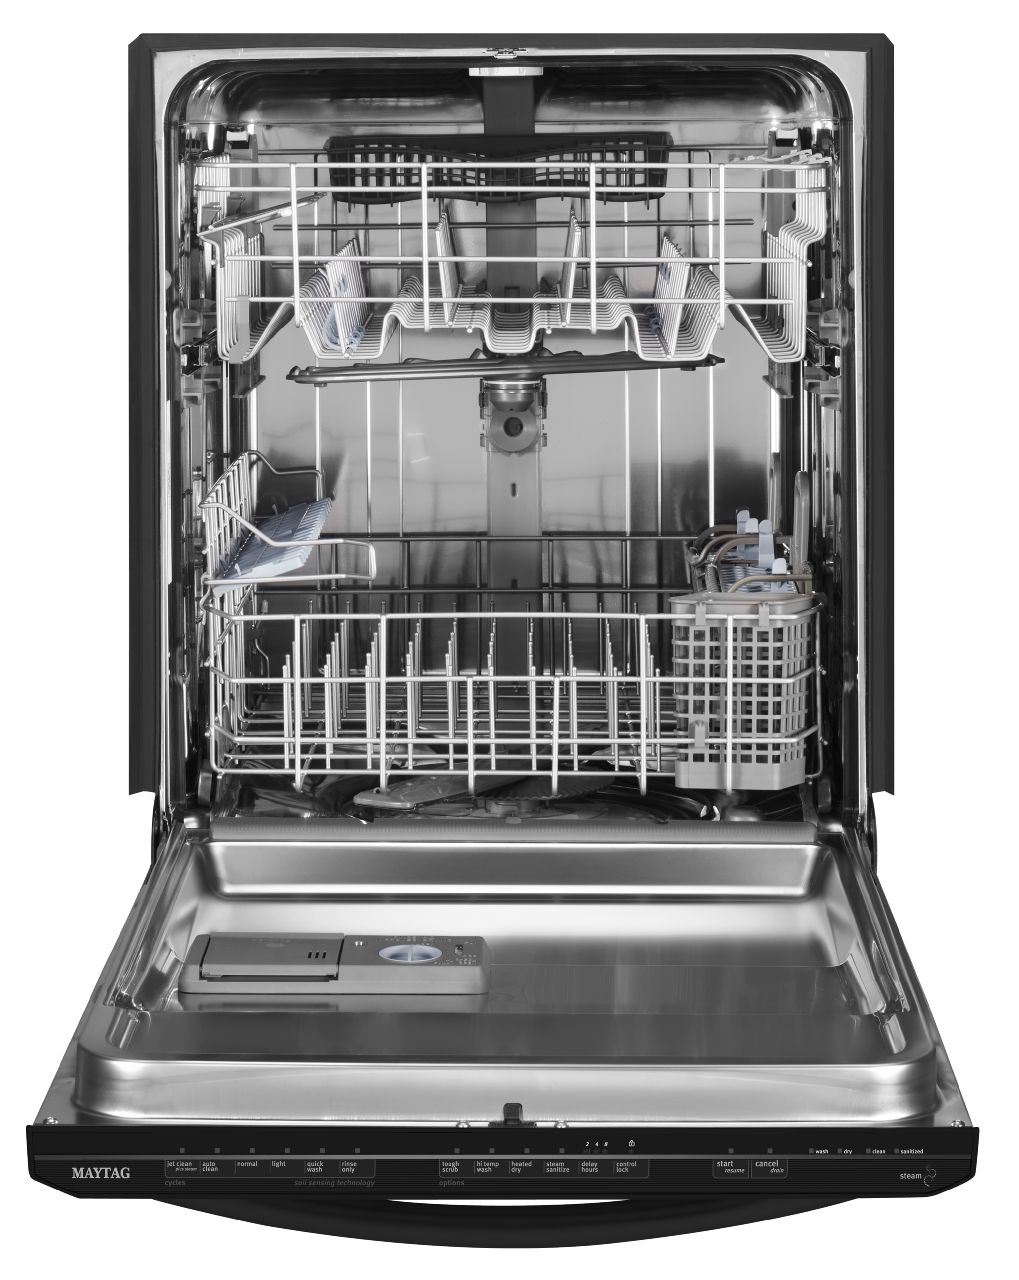 "Maytag 24"" Jetclean® Plus Built-In Dishwasher w/ Premium Rack Glides - Black"